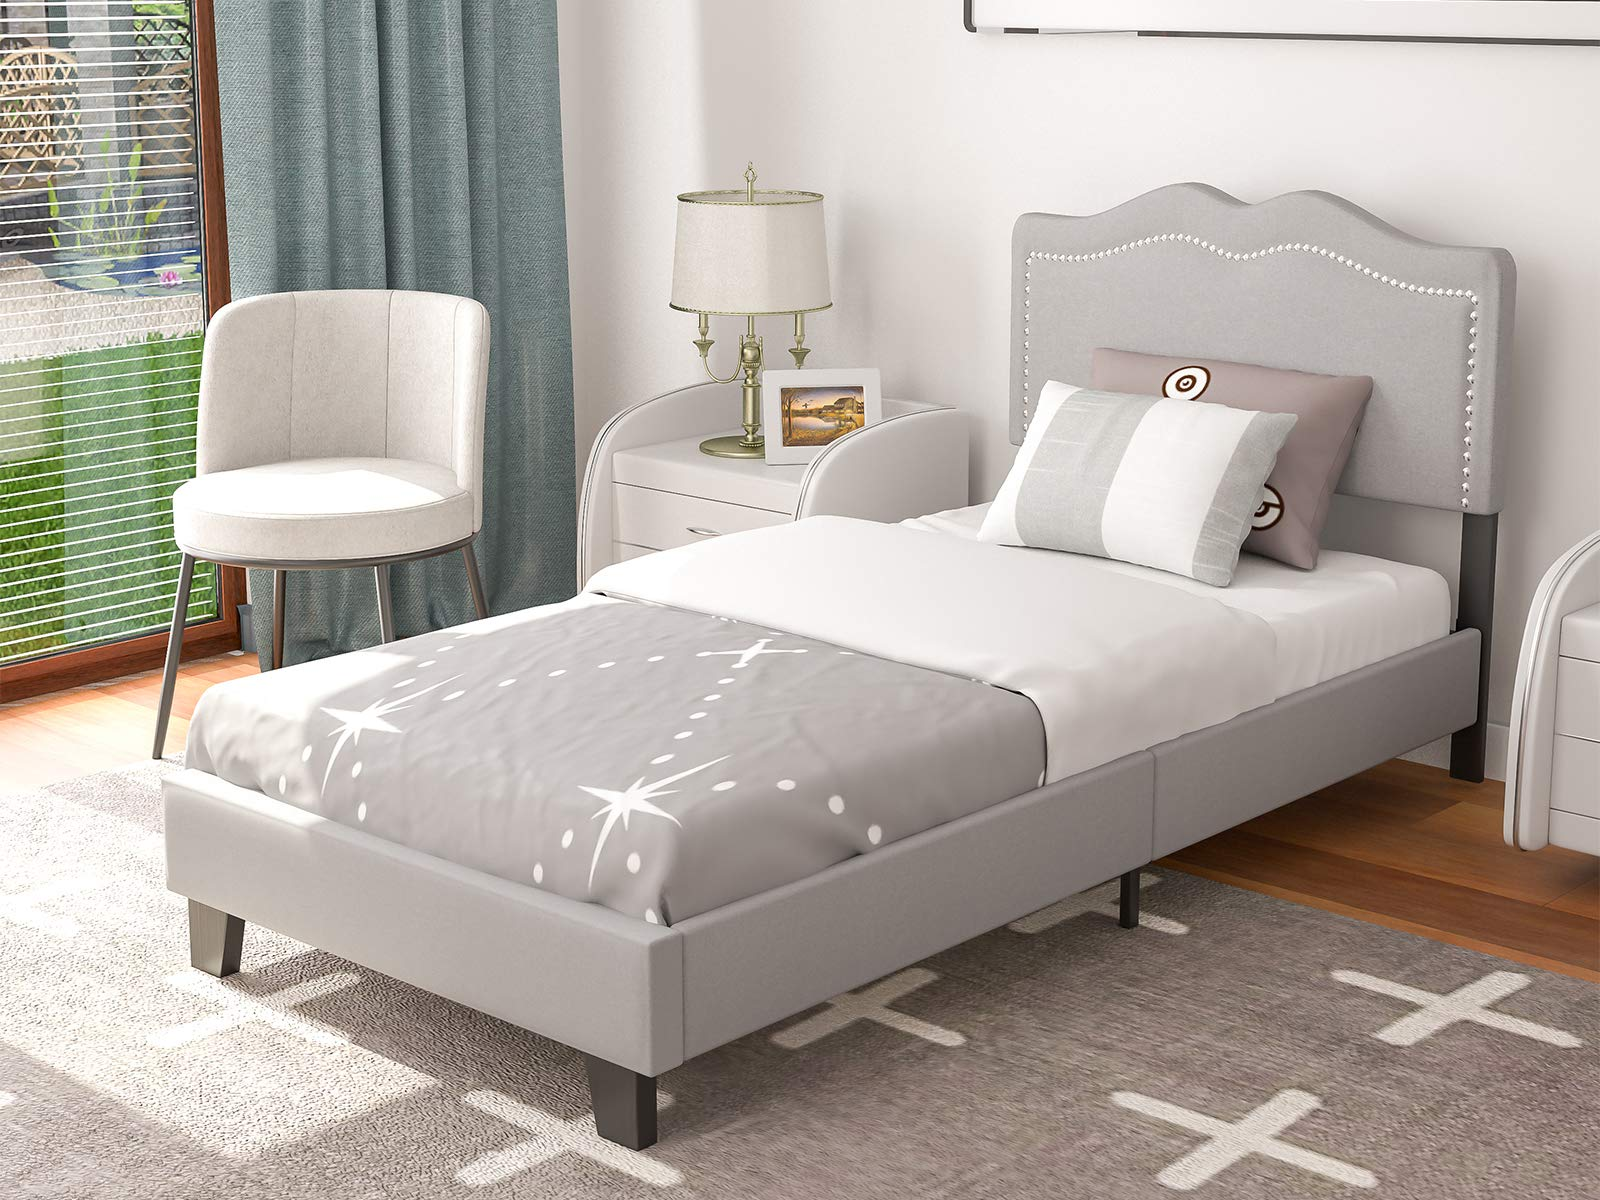 mecor Upholstered Linen Twin Platform Bed Frame with Curved Fabric Headboard, Headboard Height Adjustable, Nailhead Trim Design – Strong Wooden Slats Support – Light Grey, Twin